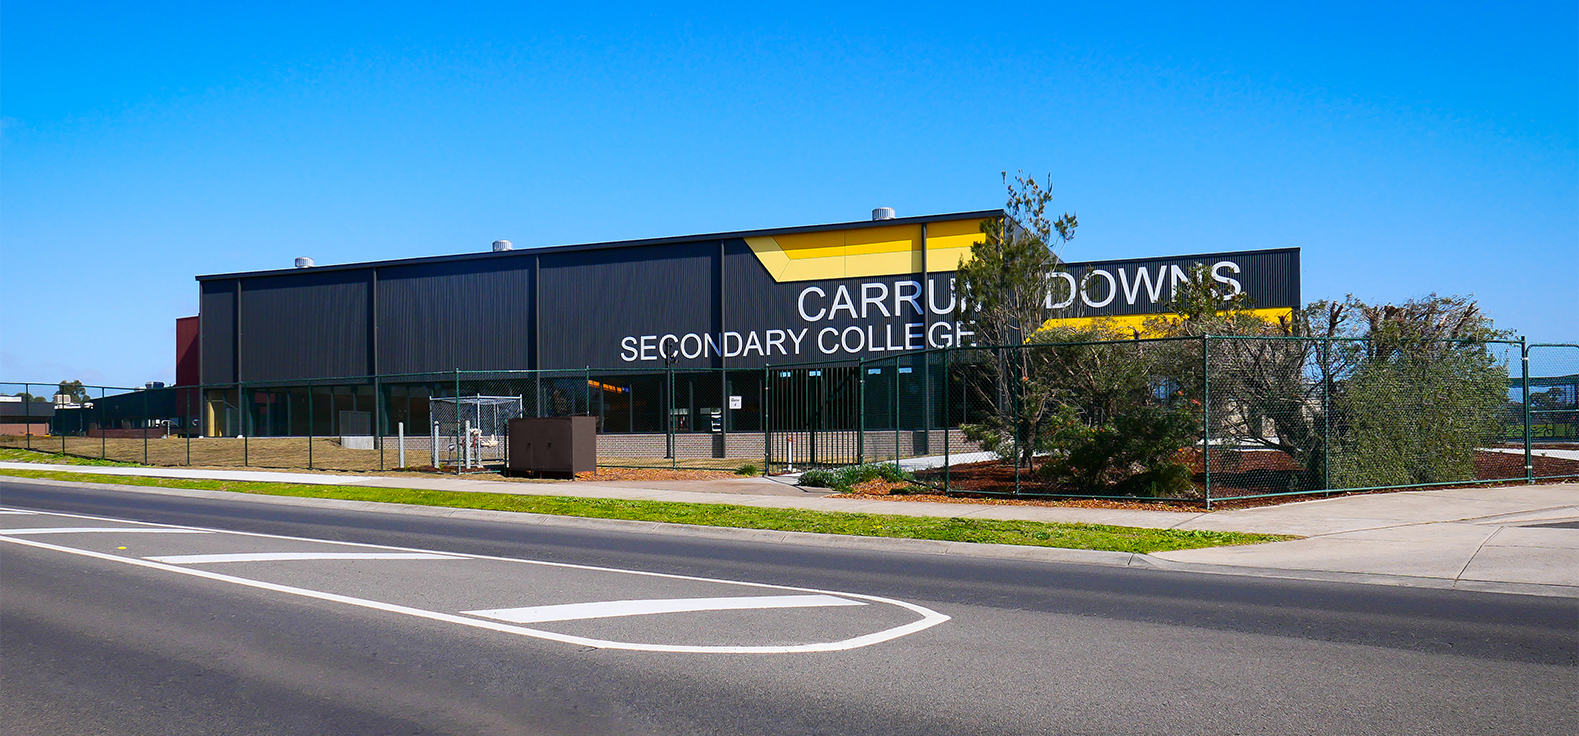 How Much is My Home Worth in Carrum Downs?